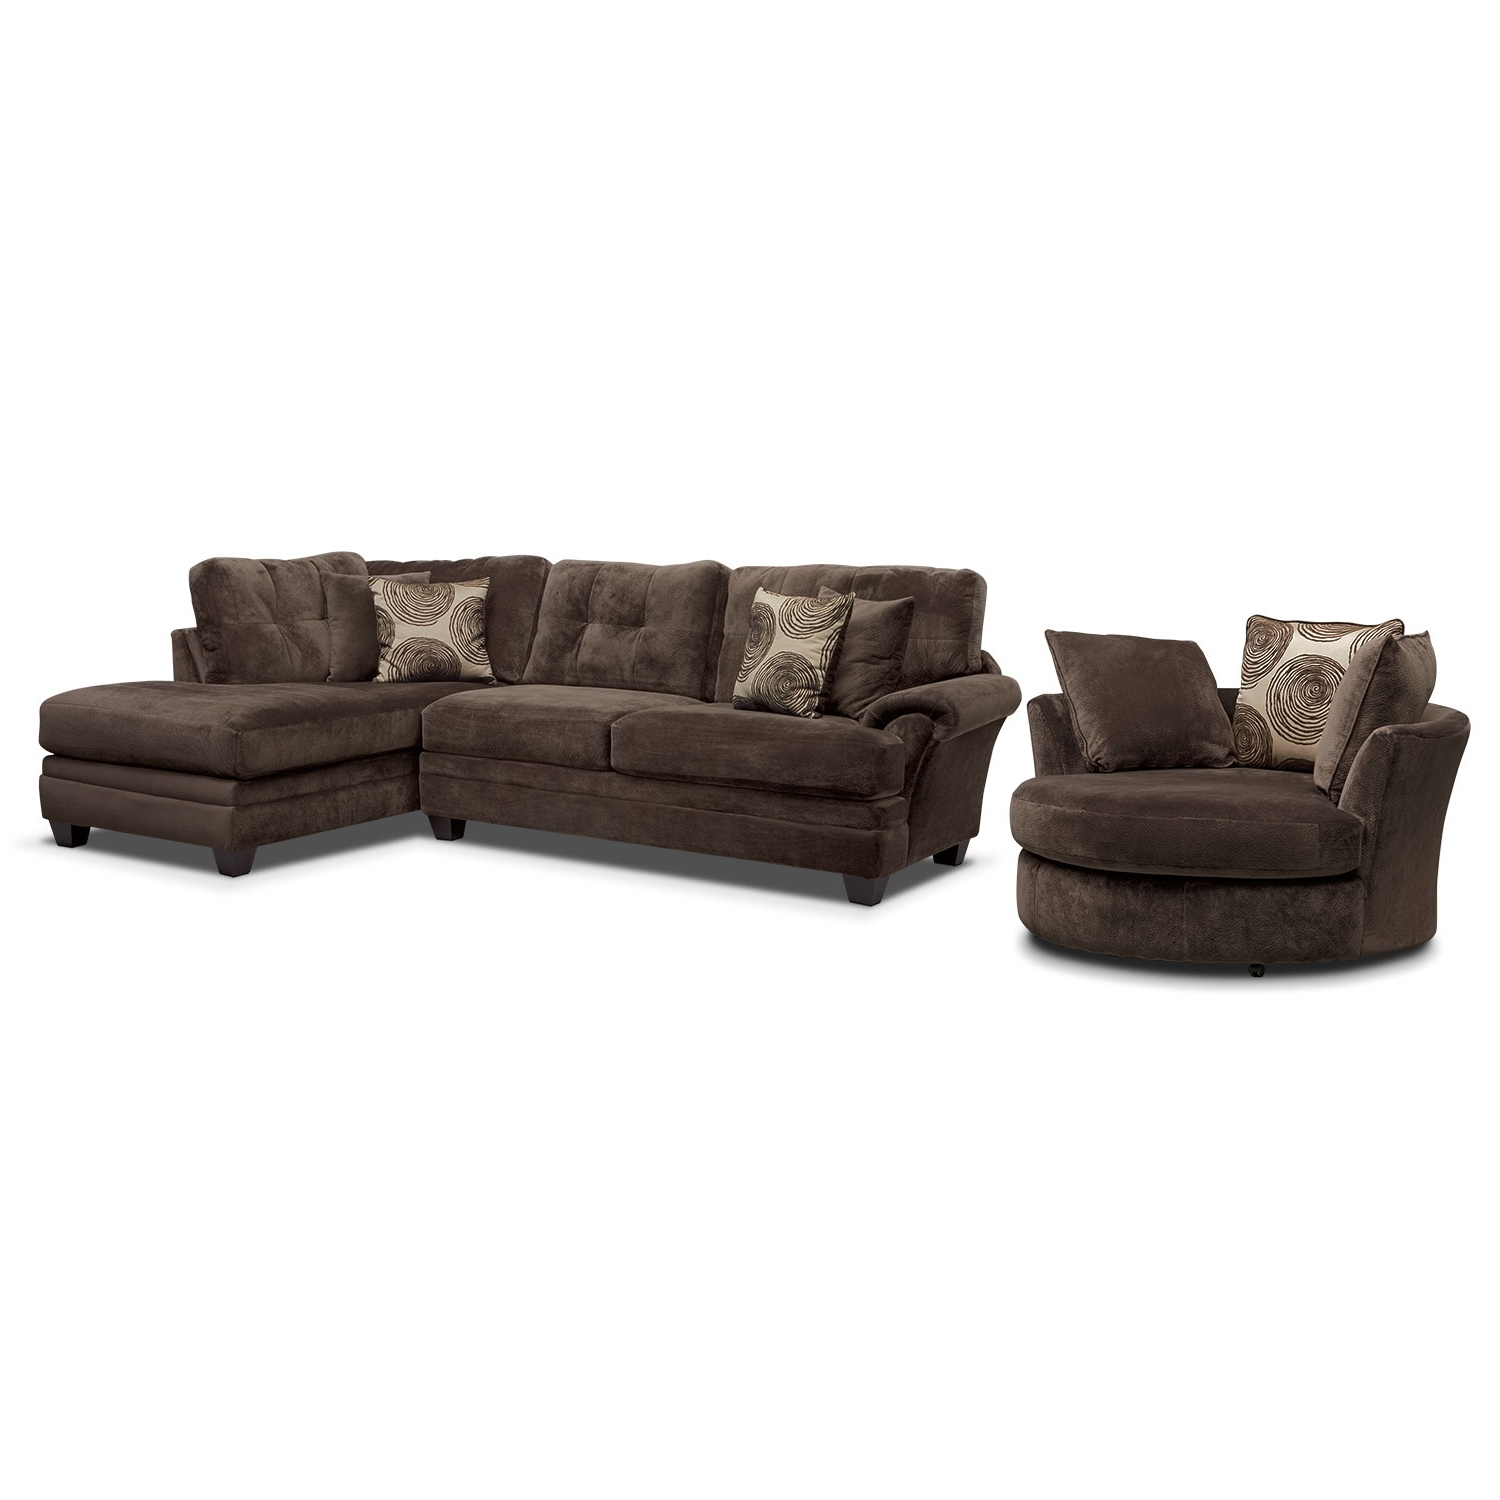 Sofas With Swivel Chair For Popular Cordelle 2 Piece Right Facing Chaise Sectional And Swivel Chair (View 11 of 20)